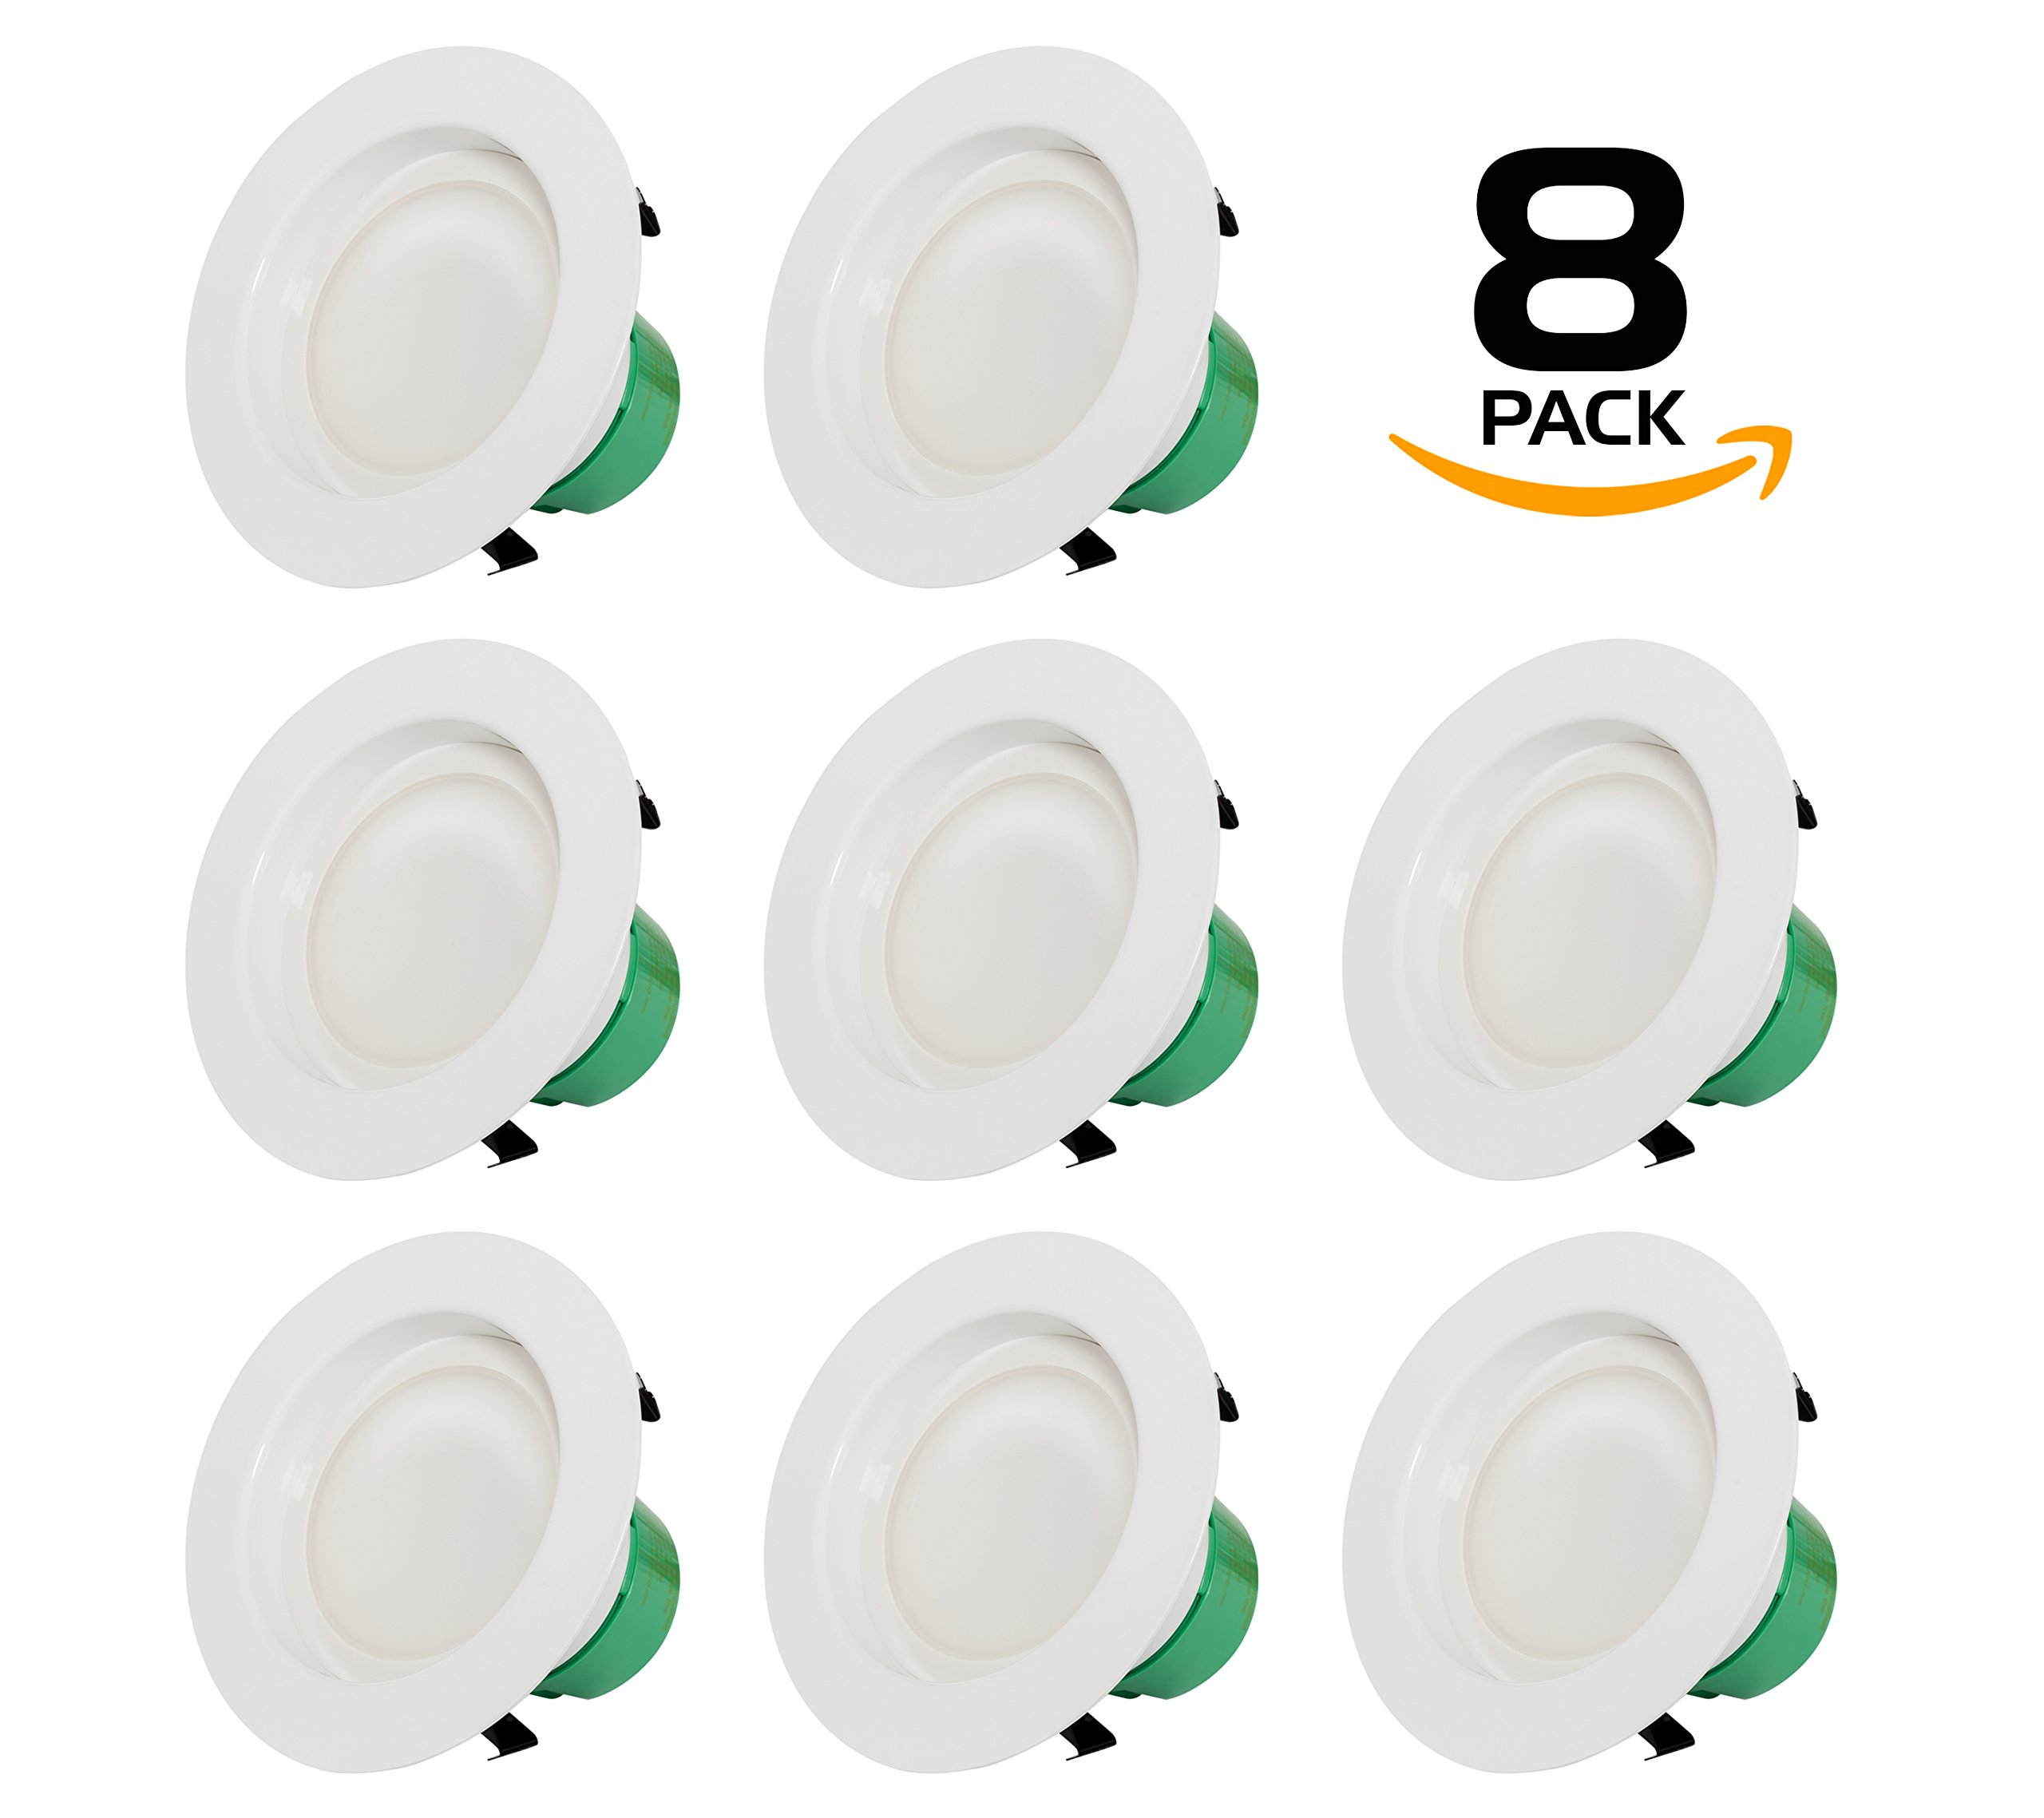 Westgate Lighting 19 Watt 6'' Inch Recessed Lighting Kit Dimmable LED Retrofit Downlight With Integrated Smooth Trim 120V - 5 Year Warranty (3500K Neutral White, 8 Pack)